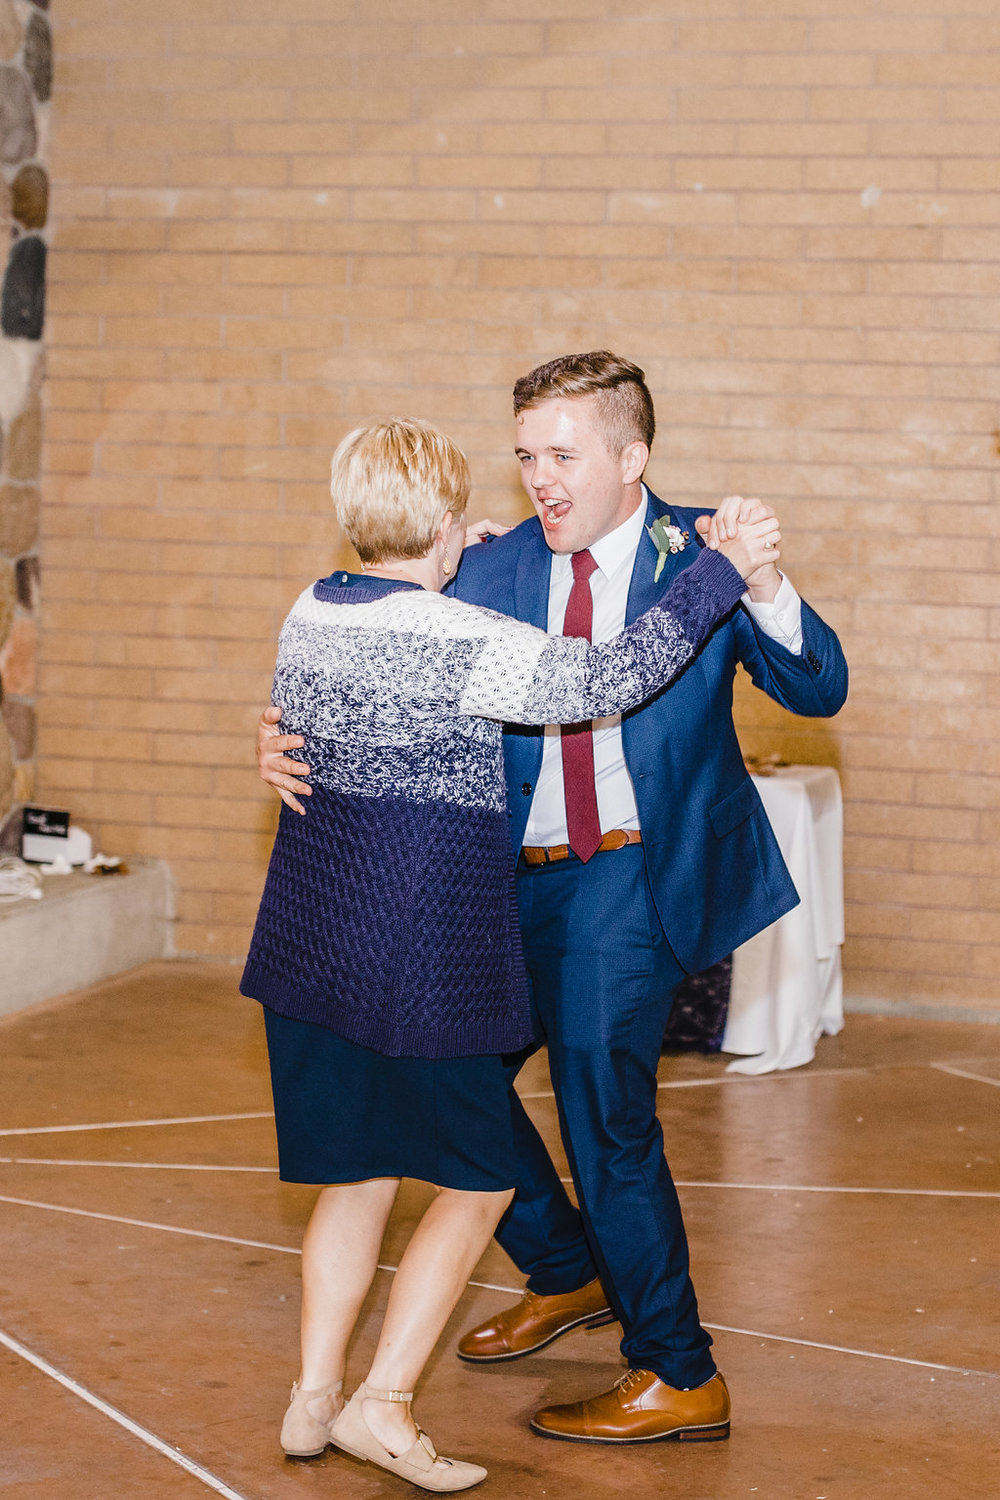 groom and mother dance at lds wedding reception in salt lake city utah professional wedding day photographer reception photography